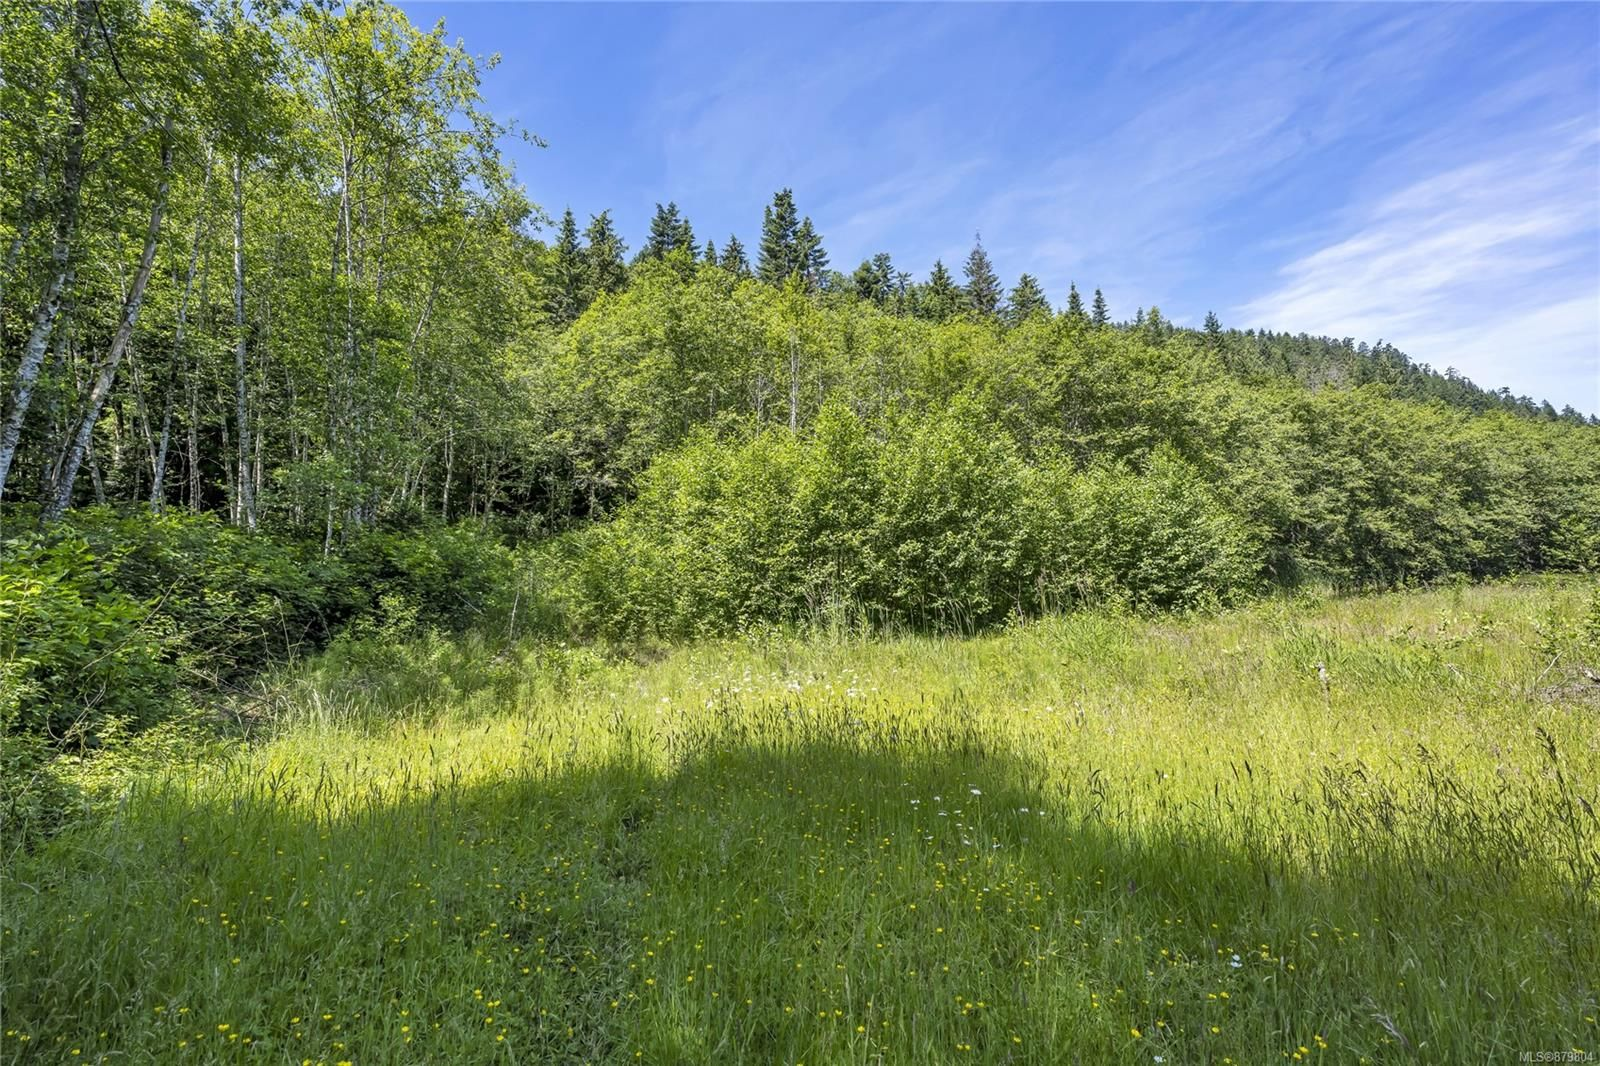 Photo 14: Photos: 3596 Riverside Rd in : ML Cobble Hill Manufactured Home for sale (Malahat & Area)  : MLS®# 879804